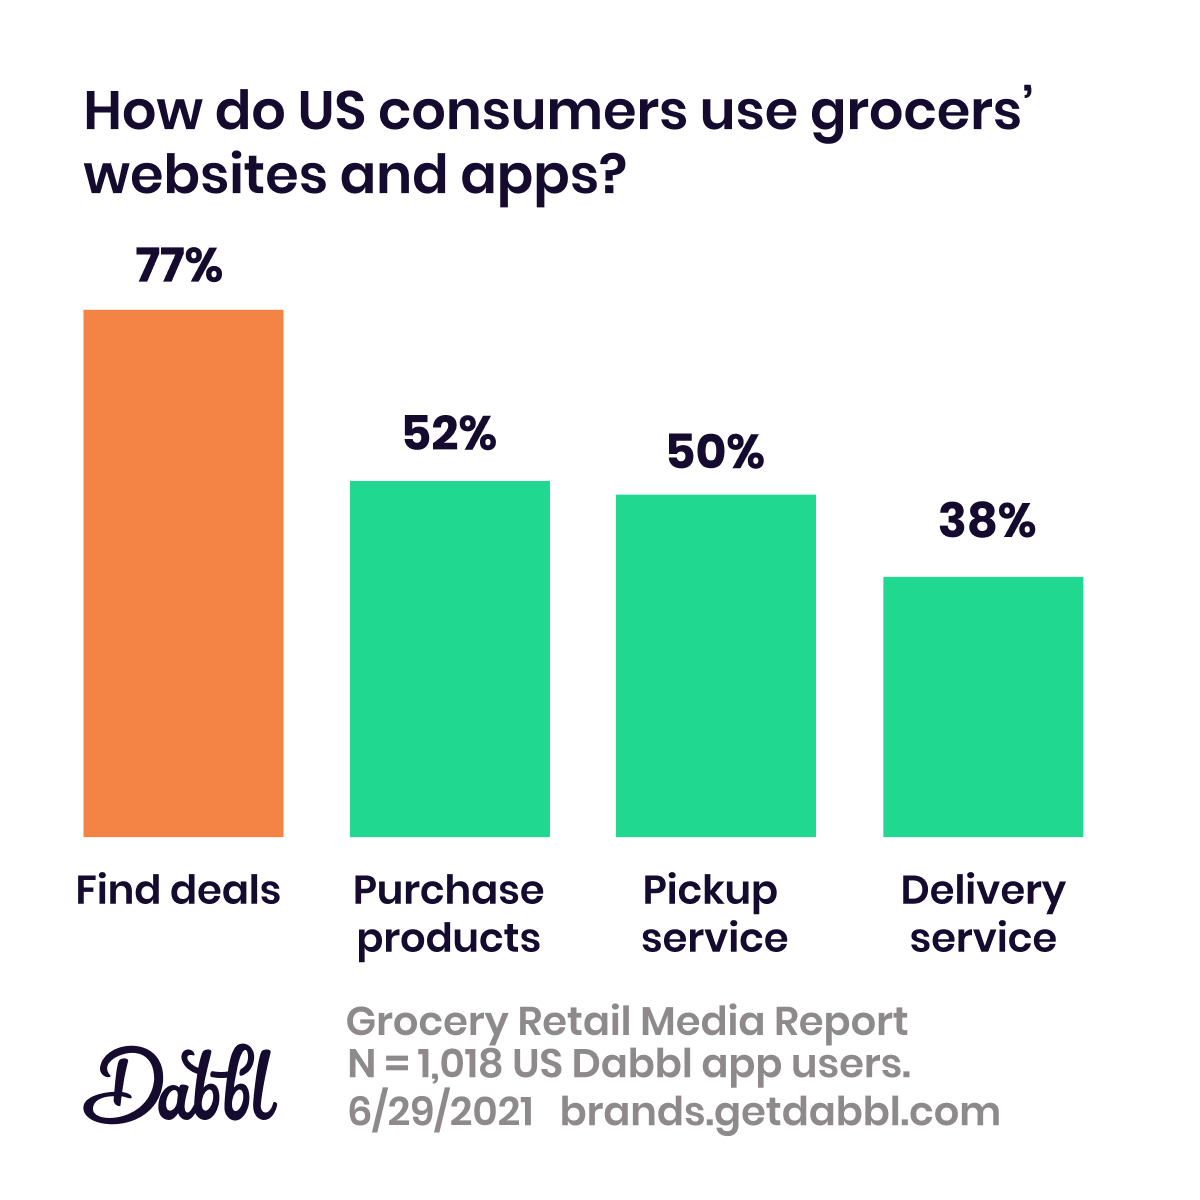 Dabbl Grocery Retail Media Report: types of digital property usage